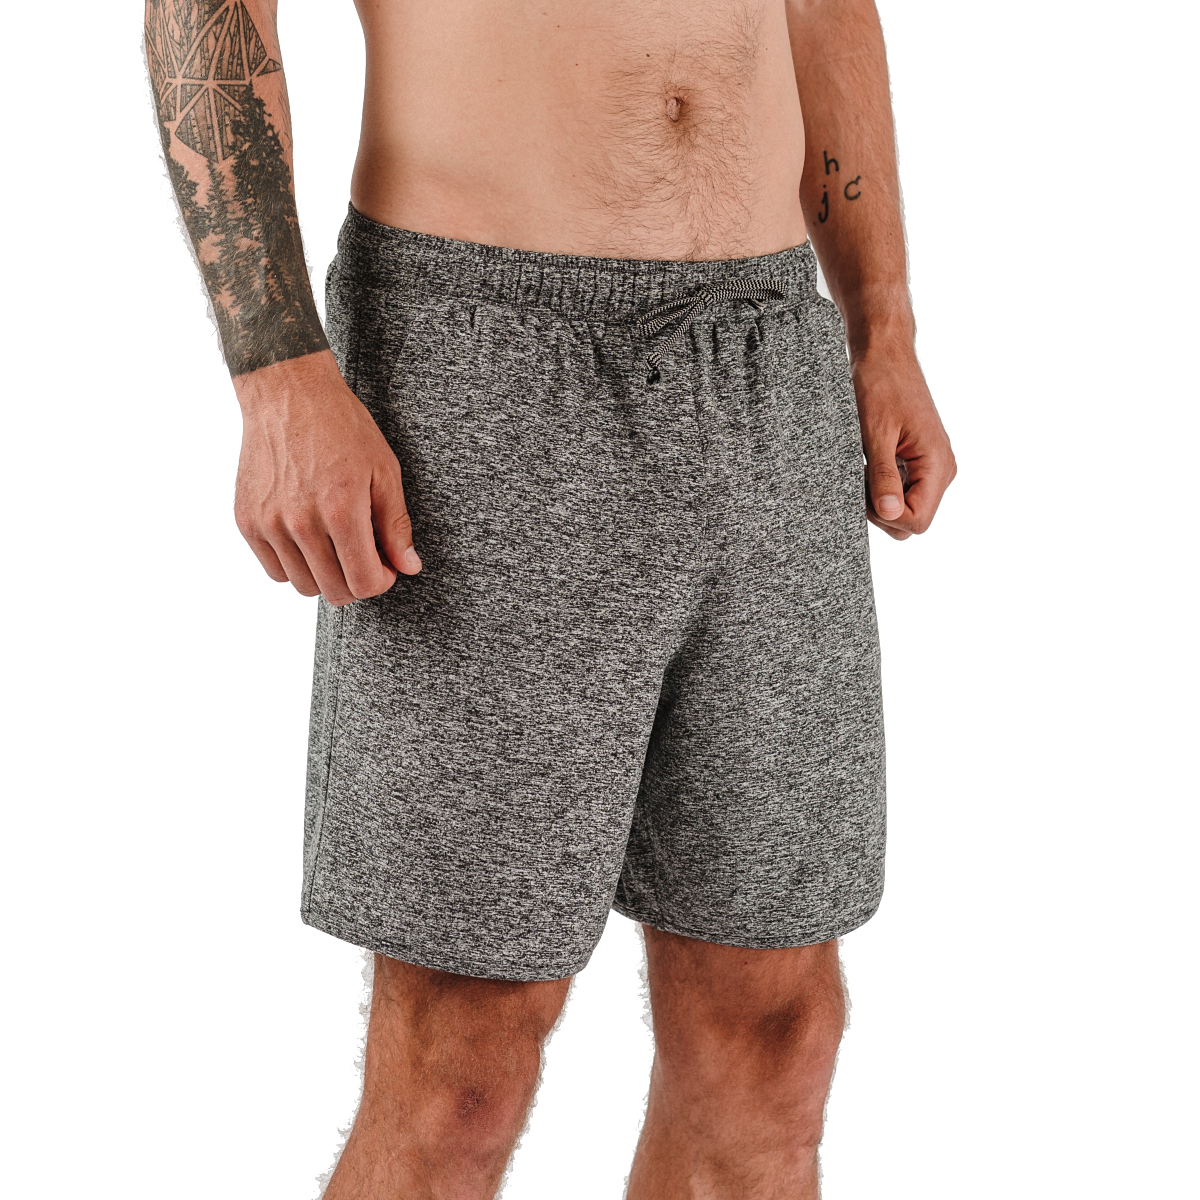 Men's Rabbit EZ 7'' Short - Color: Charcoal - Size: S, Charcoal, large, image 2